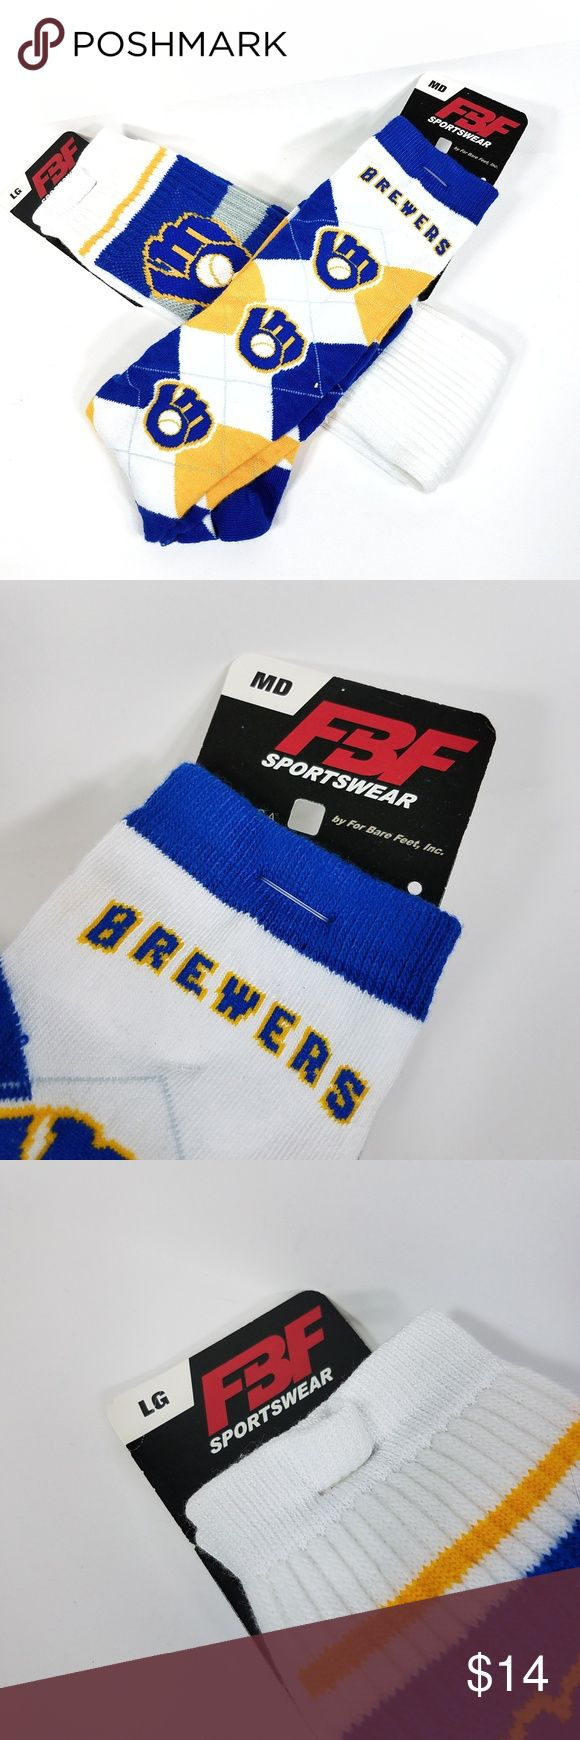 Milwaukee Brewers High Baseball Socks Lot of 2 M L FBF Size Medium and Large Polyester Blend New with tags  These baseball socks are a perfect way to support your local team. They feature the Milwaukee Brewers logo and team colors. Accessories Hosiery & Socks